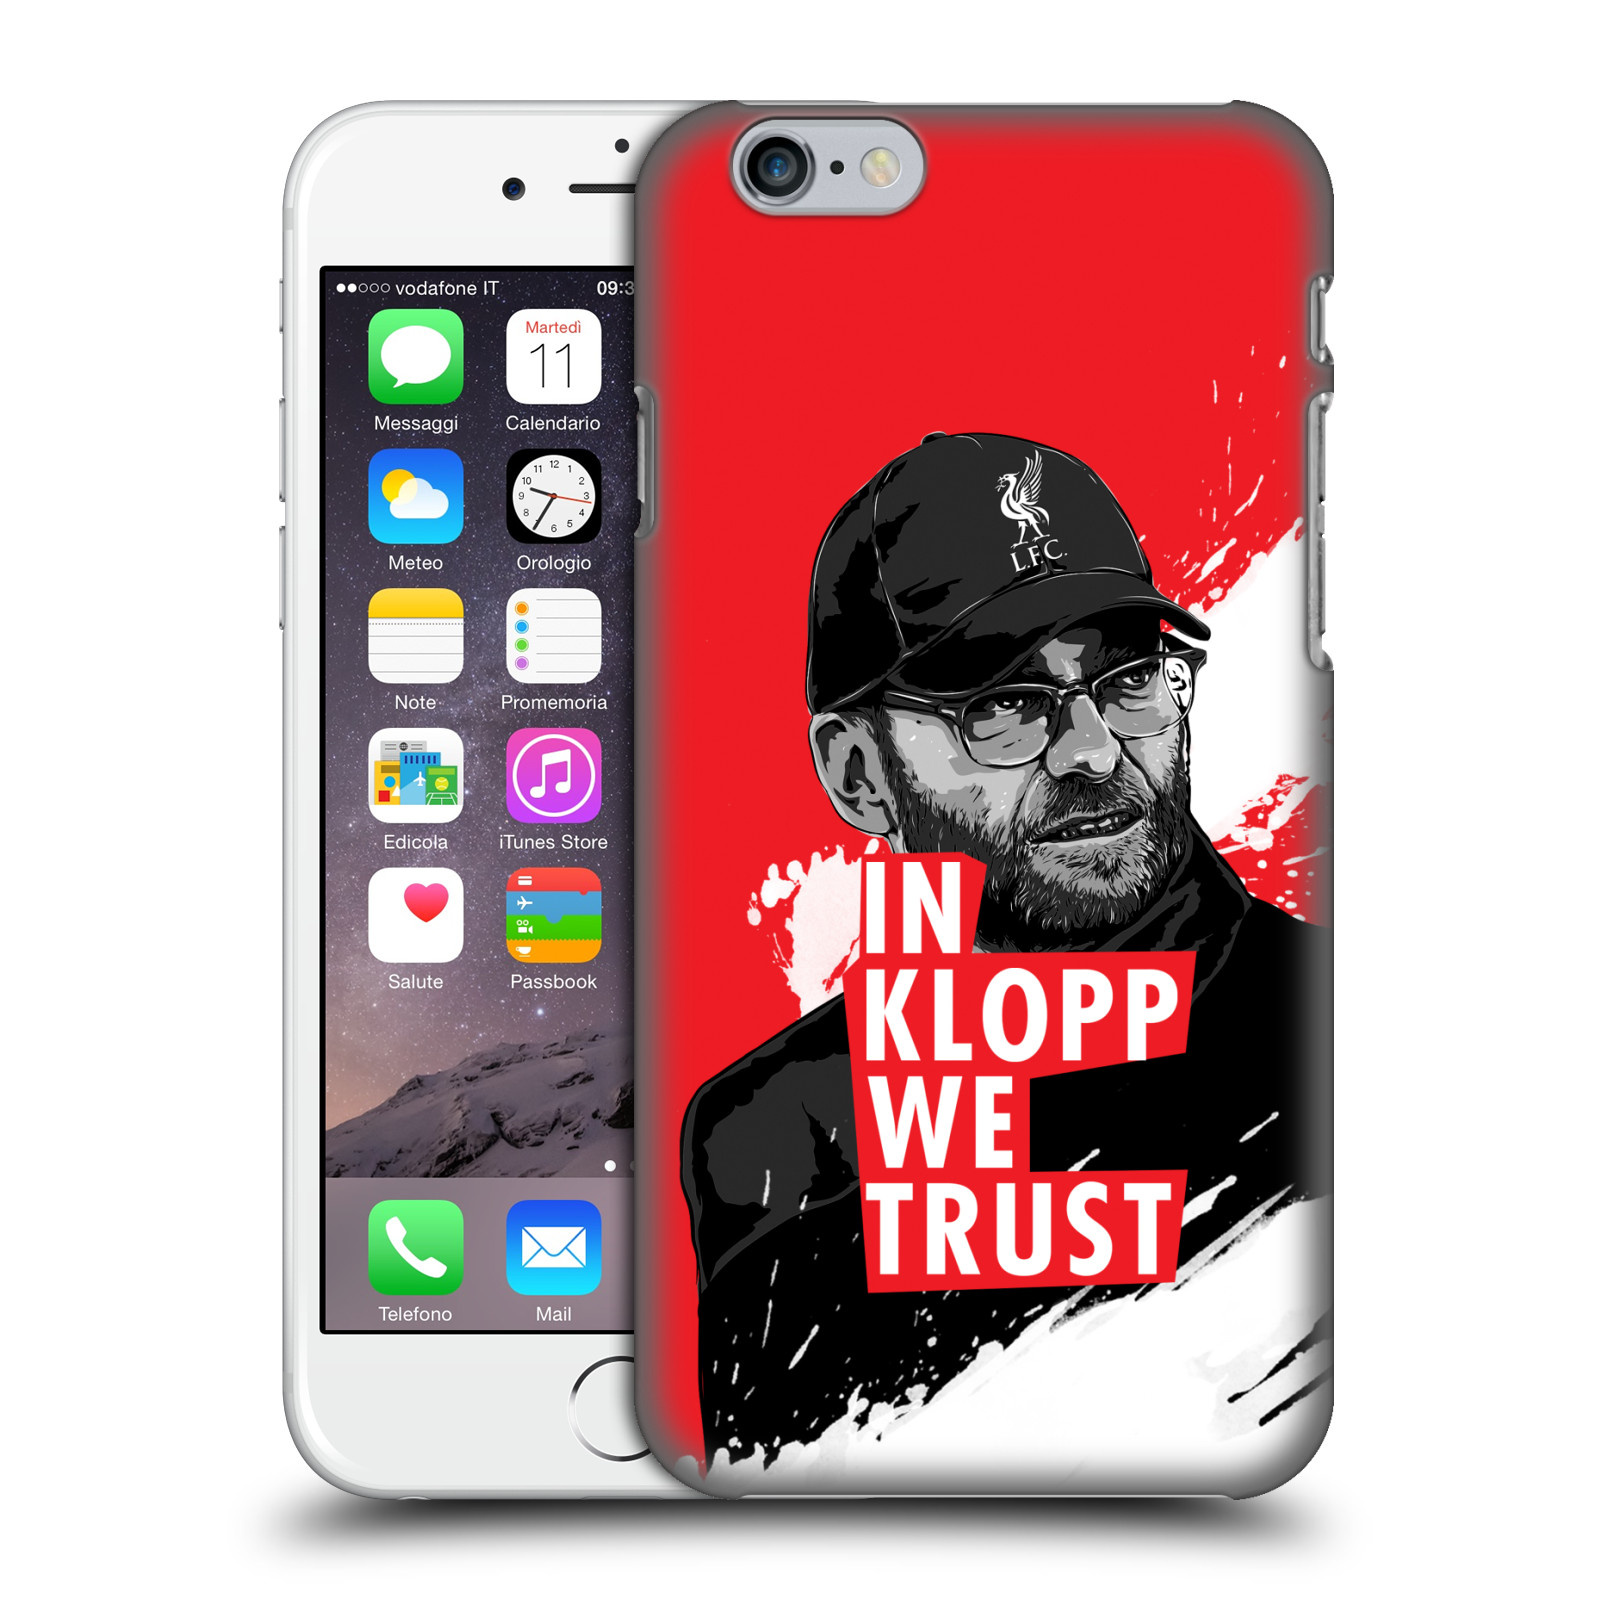 Liverpool FC LFC Jurgen Klopp Illustrations-Stare Red